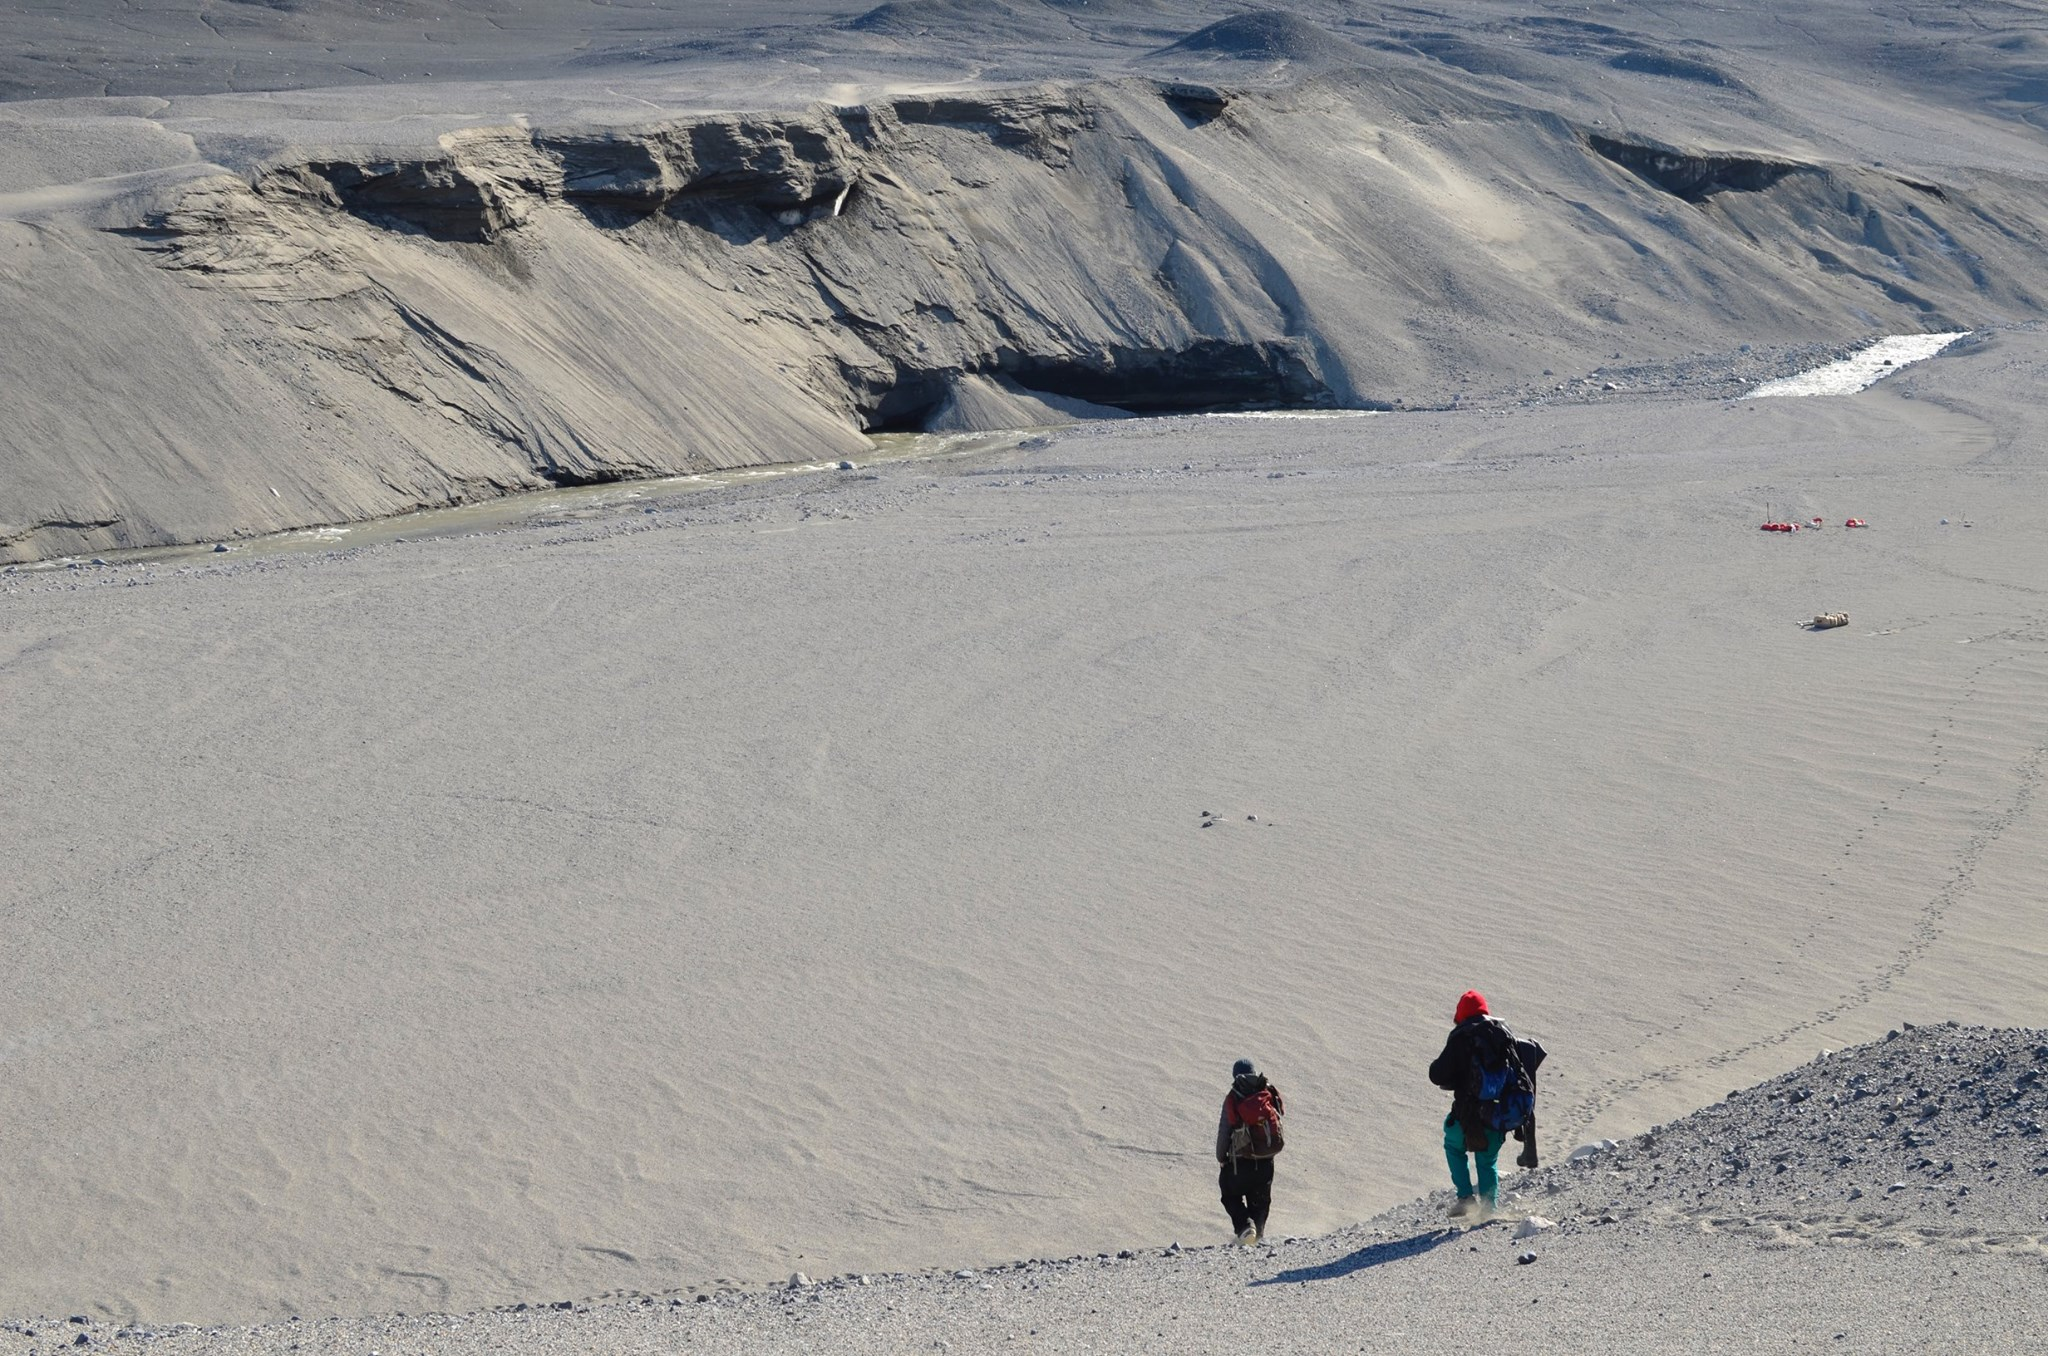 Jackie Watters and Stephen Chignell descending into the Garwood River floodplain to investigate the recently re-exposed massive ice cliff in Garwood Valley. The cliff is a dramatic example of rapid buried ice loss observed in the Dry Valleys region. (Photo by Logan Schmidt)